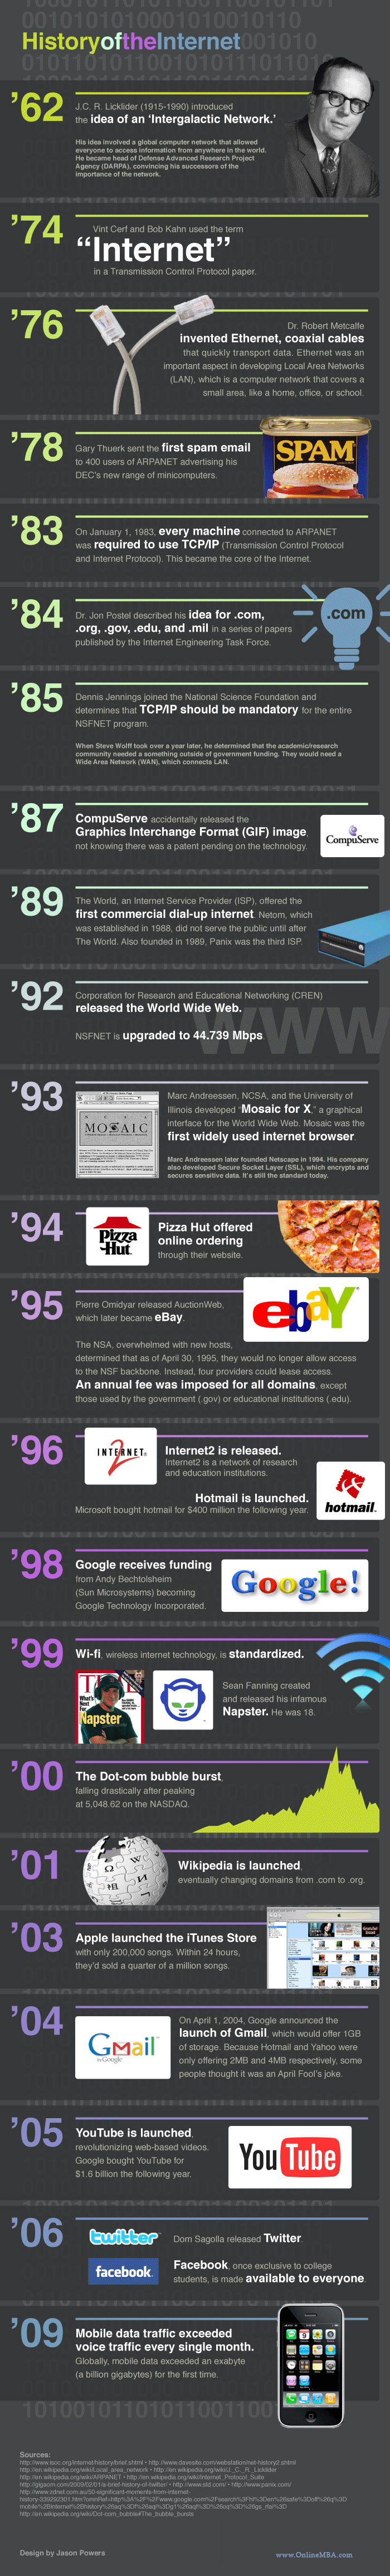 History of the Internet [Infographic]